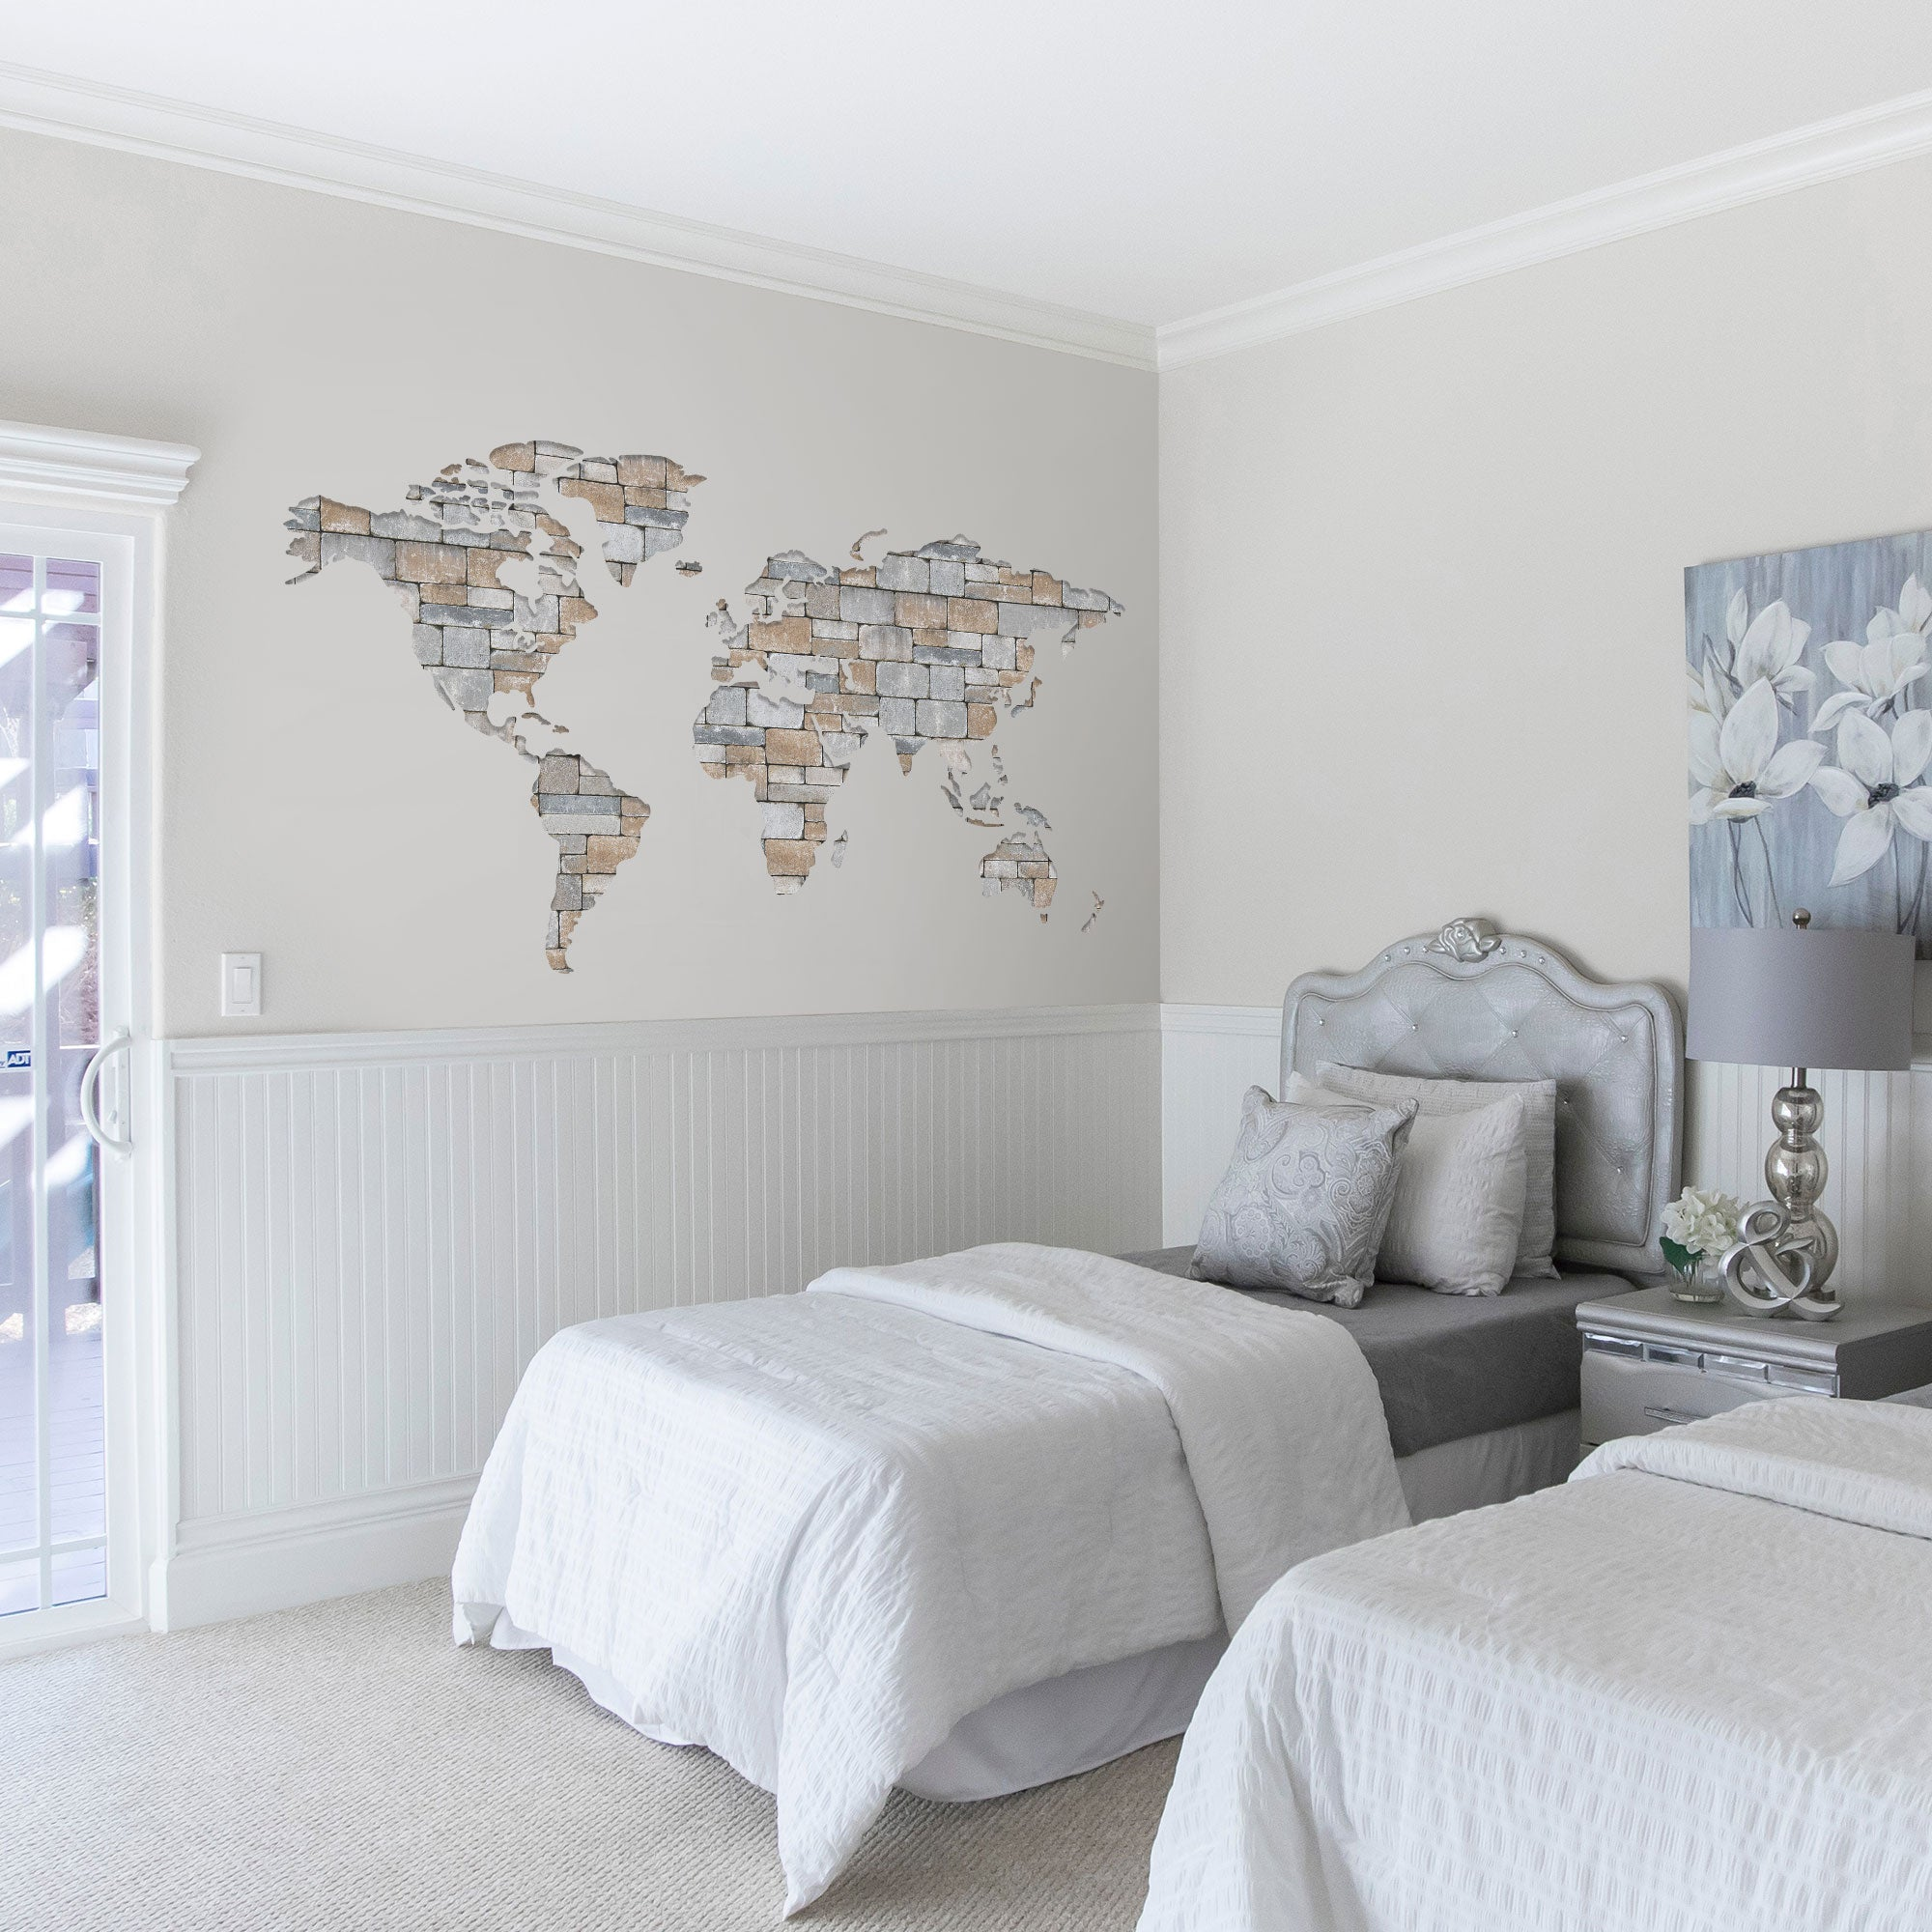 World Map Textured Graphic Wall Decal on